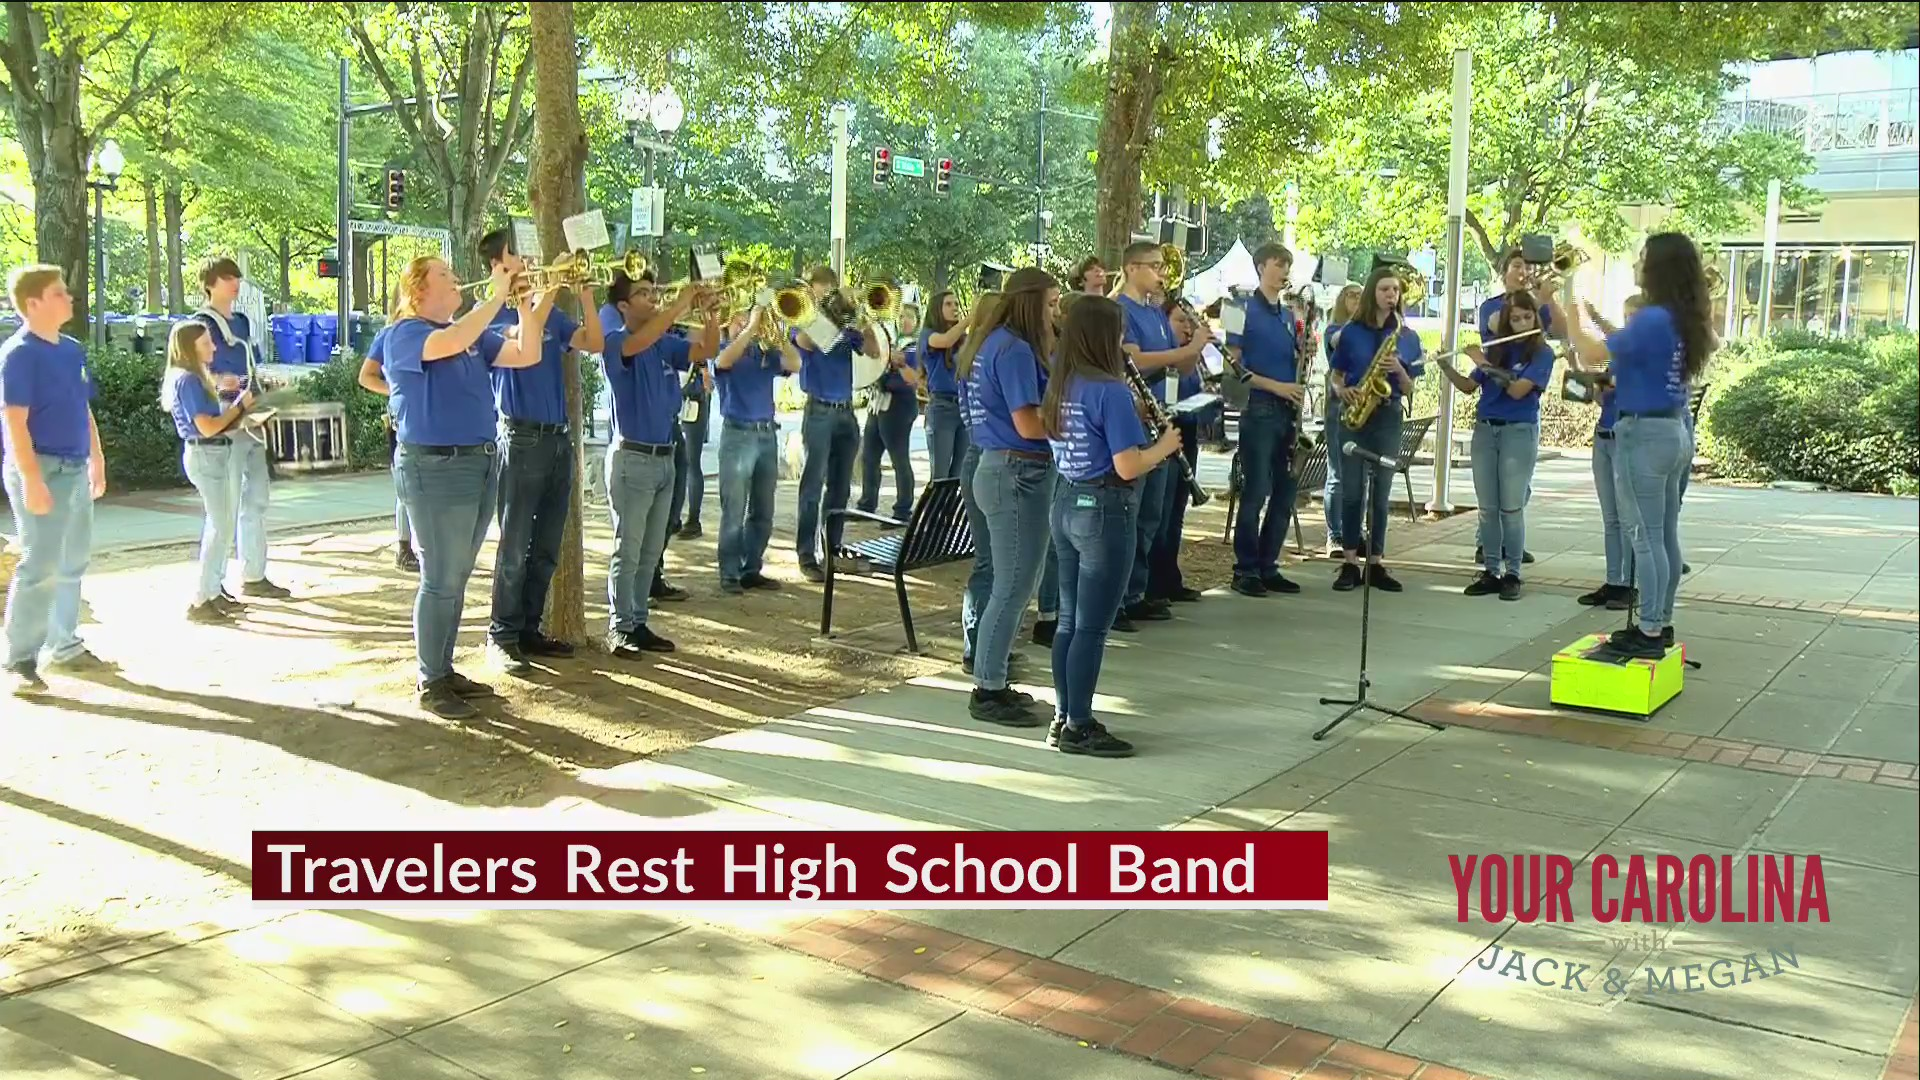 High School Band Friday - The Travelers Rest High